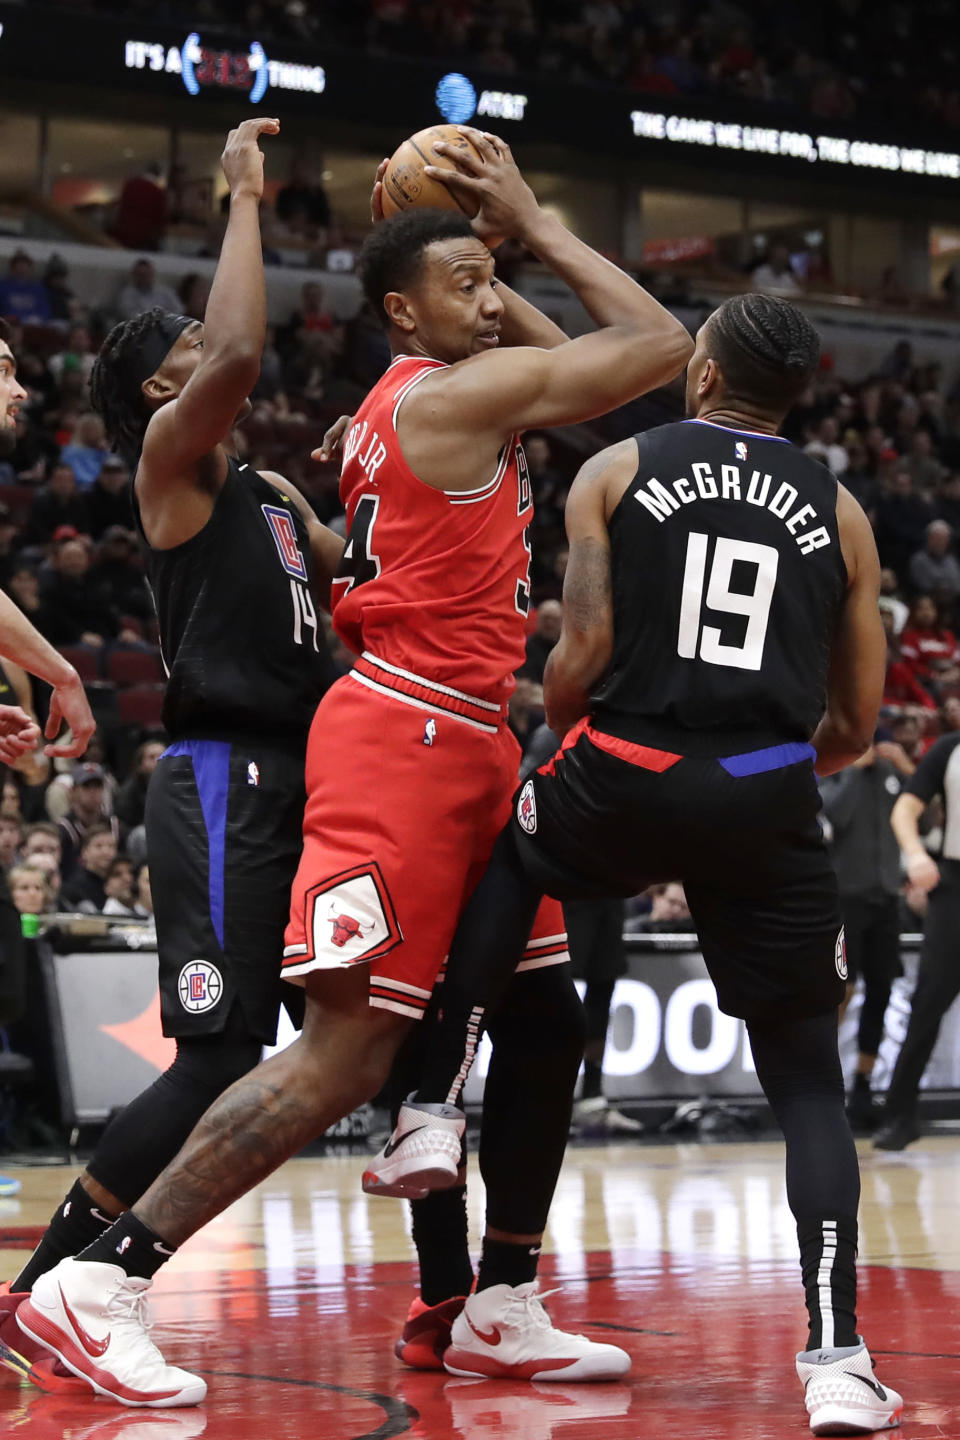 Chicago Bulls center Wendell Carter Jr., center, looks to pass against Los Angeles Clippers guard Terance Mann, left, and guard Rodney McGruder during the first half of an NBA basketball game Saturday, Dec. 14, 2019, in Chicago. (AP Photo/Nam Y. Huh)